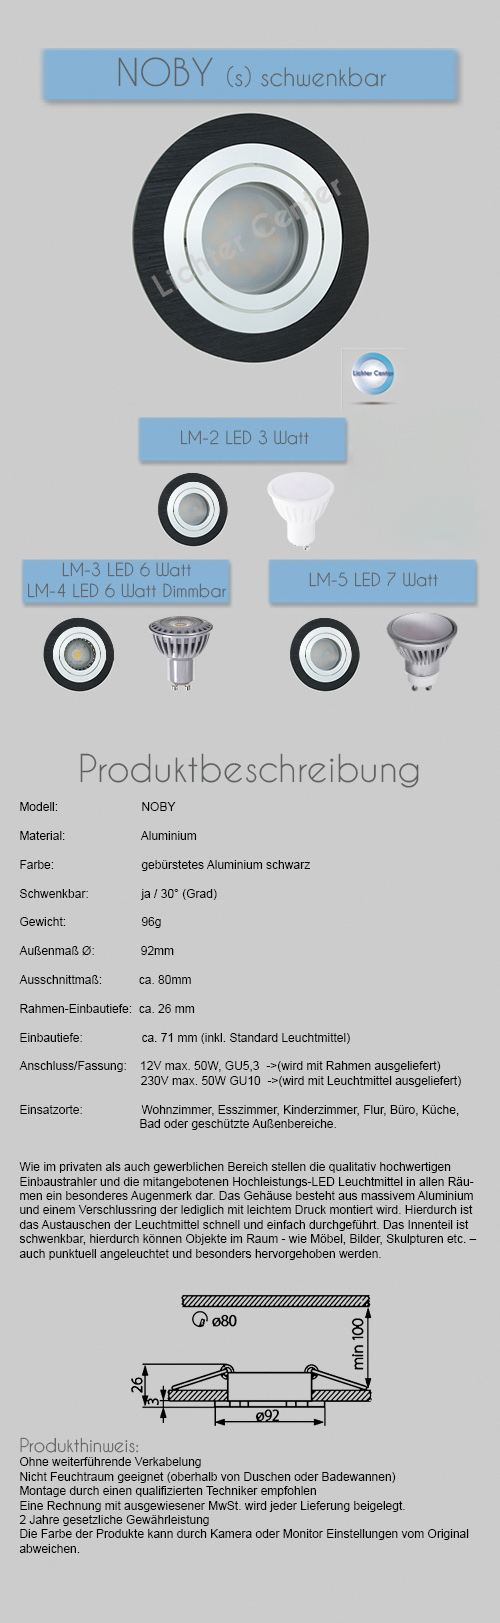 led deckenspots einbaustrahler einbauspots deckenstrahler einbaulampe gu10 230v. Black Bedroom Furniture Sets. Home Design Ideas